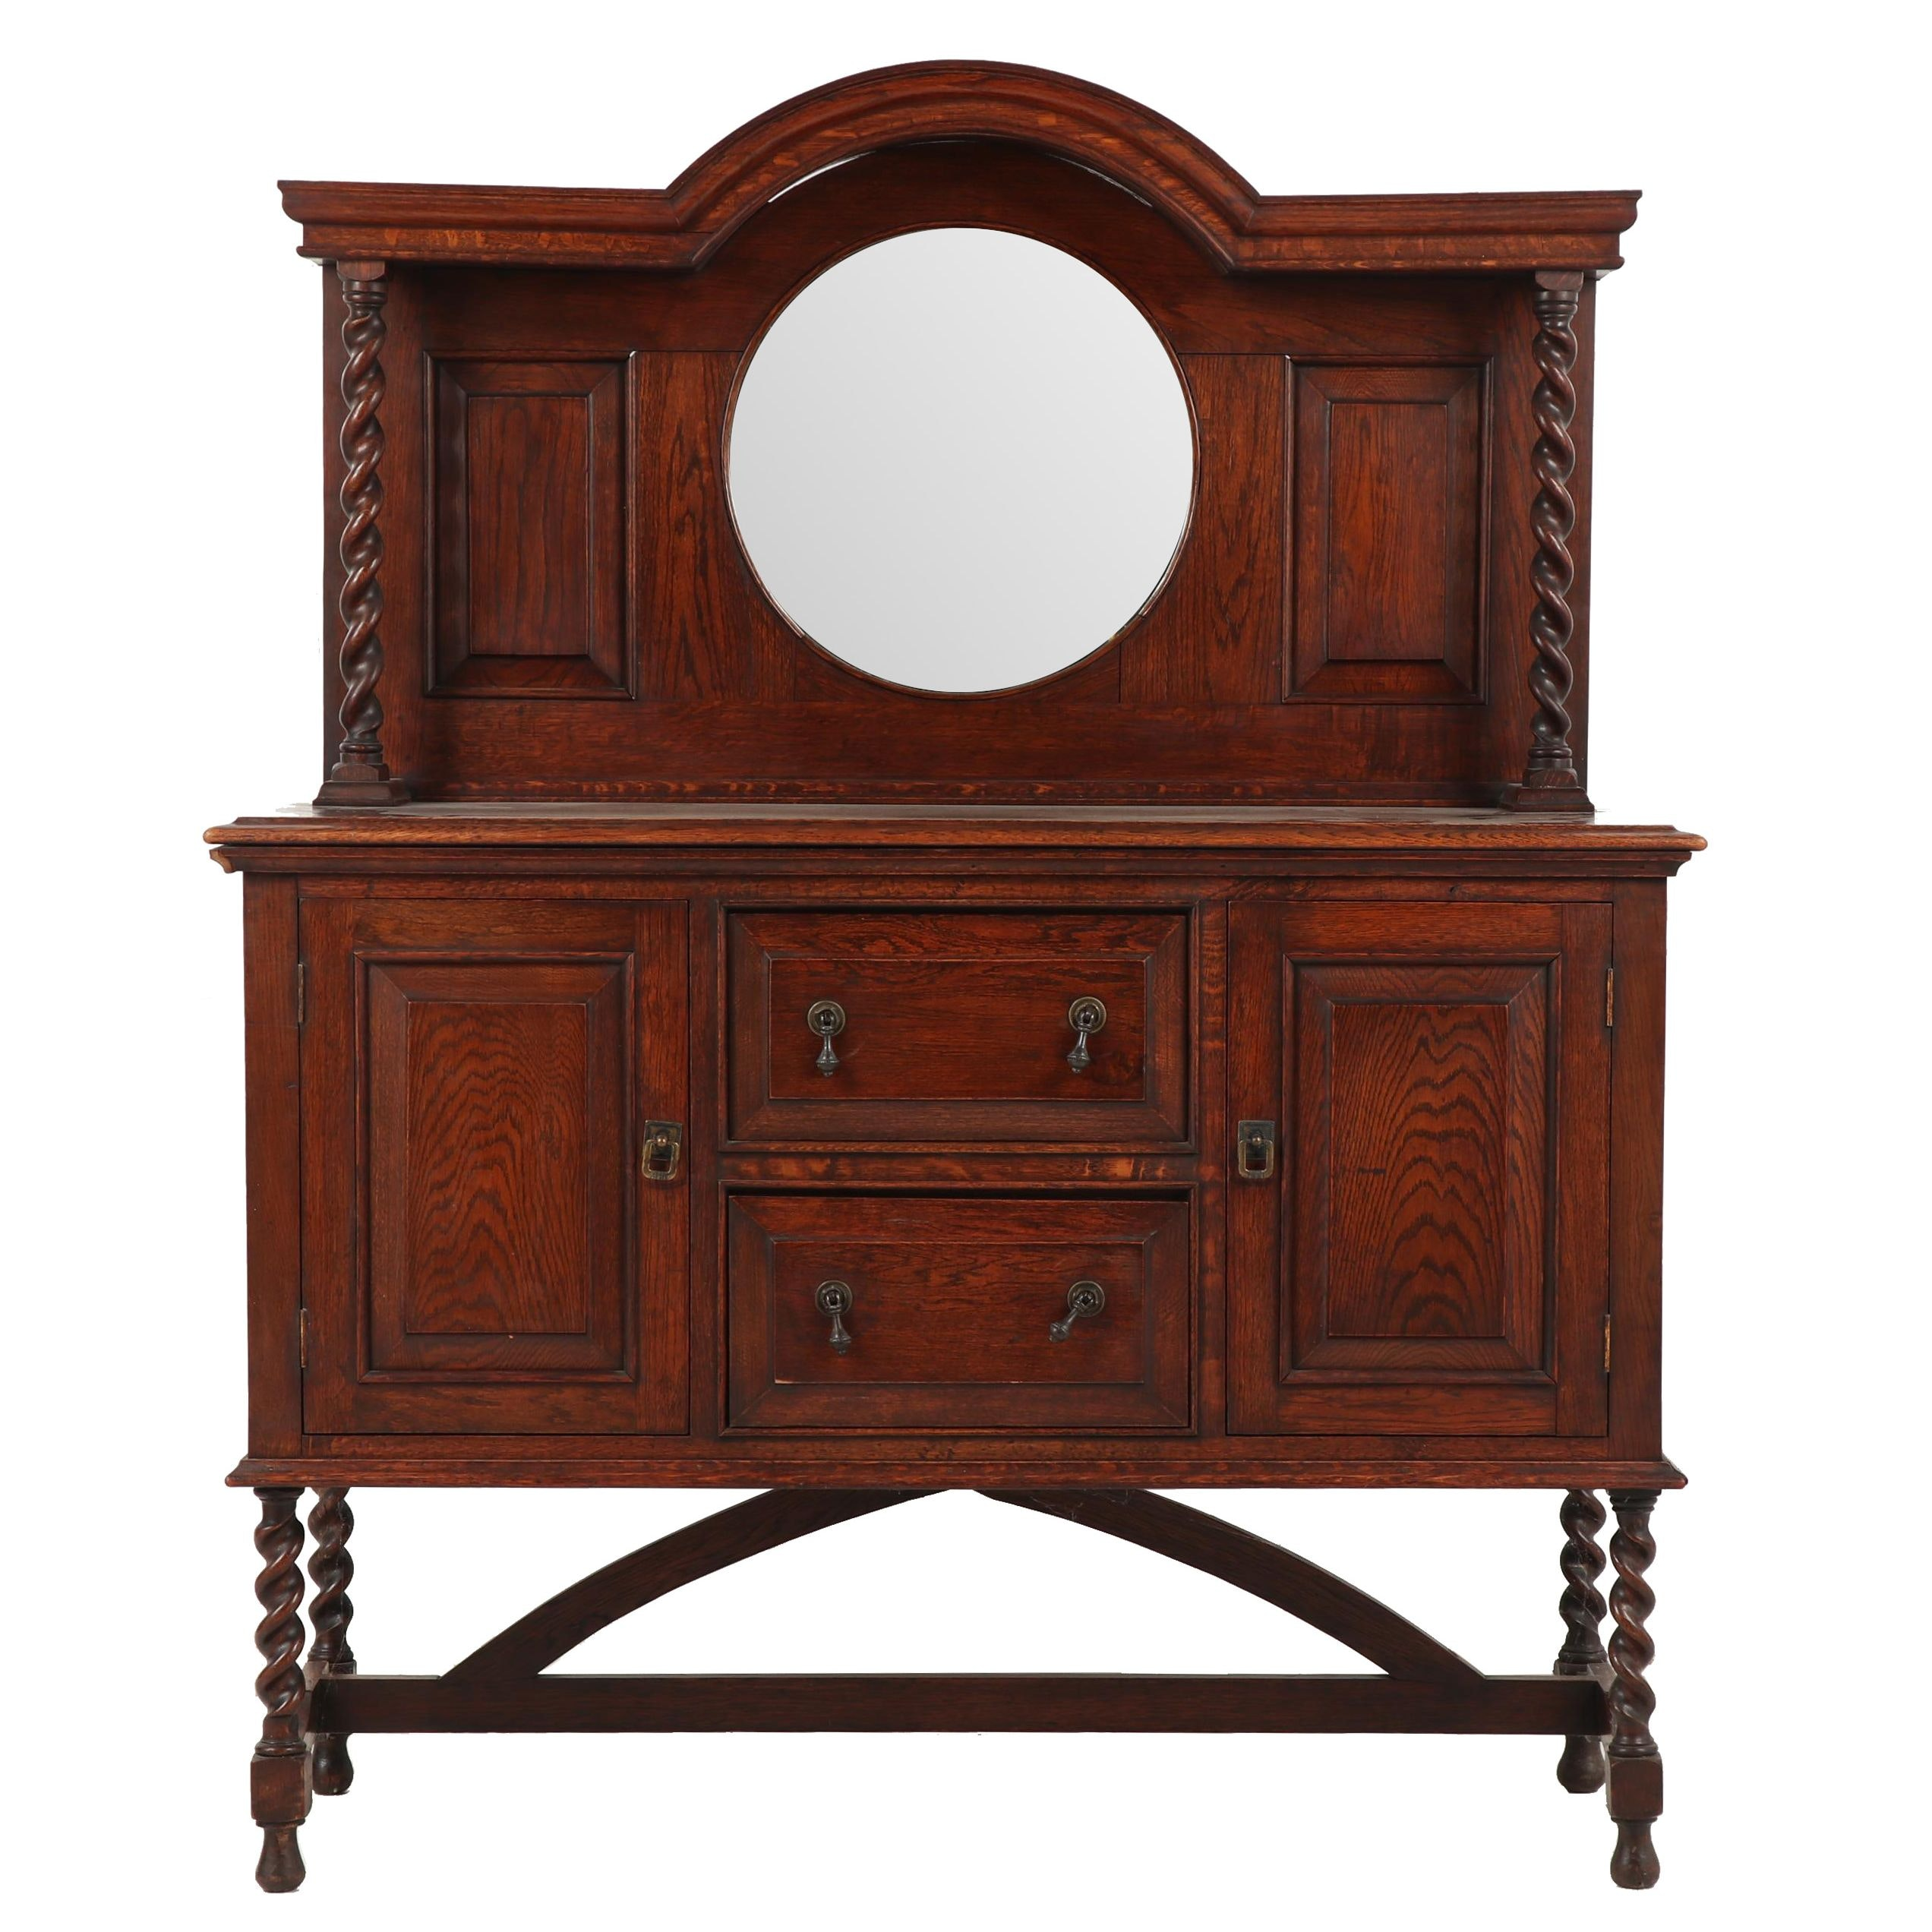 Late Victorian Oak Sideboard with Mirror, Early 20th Century